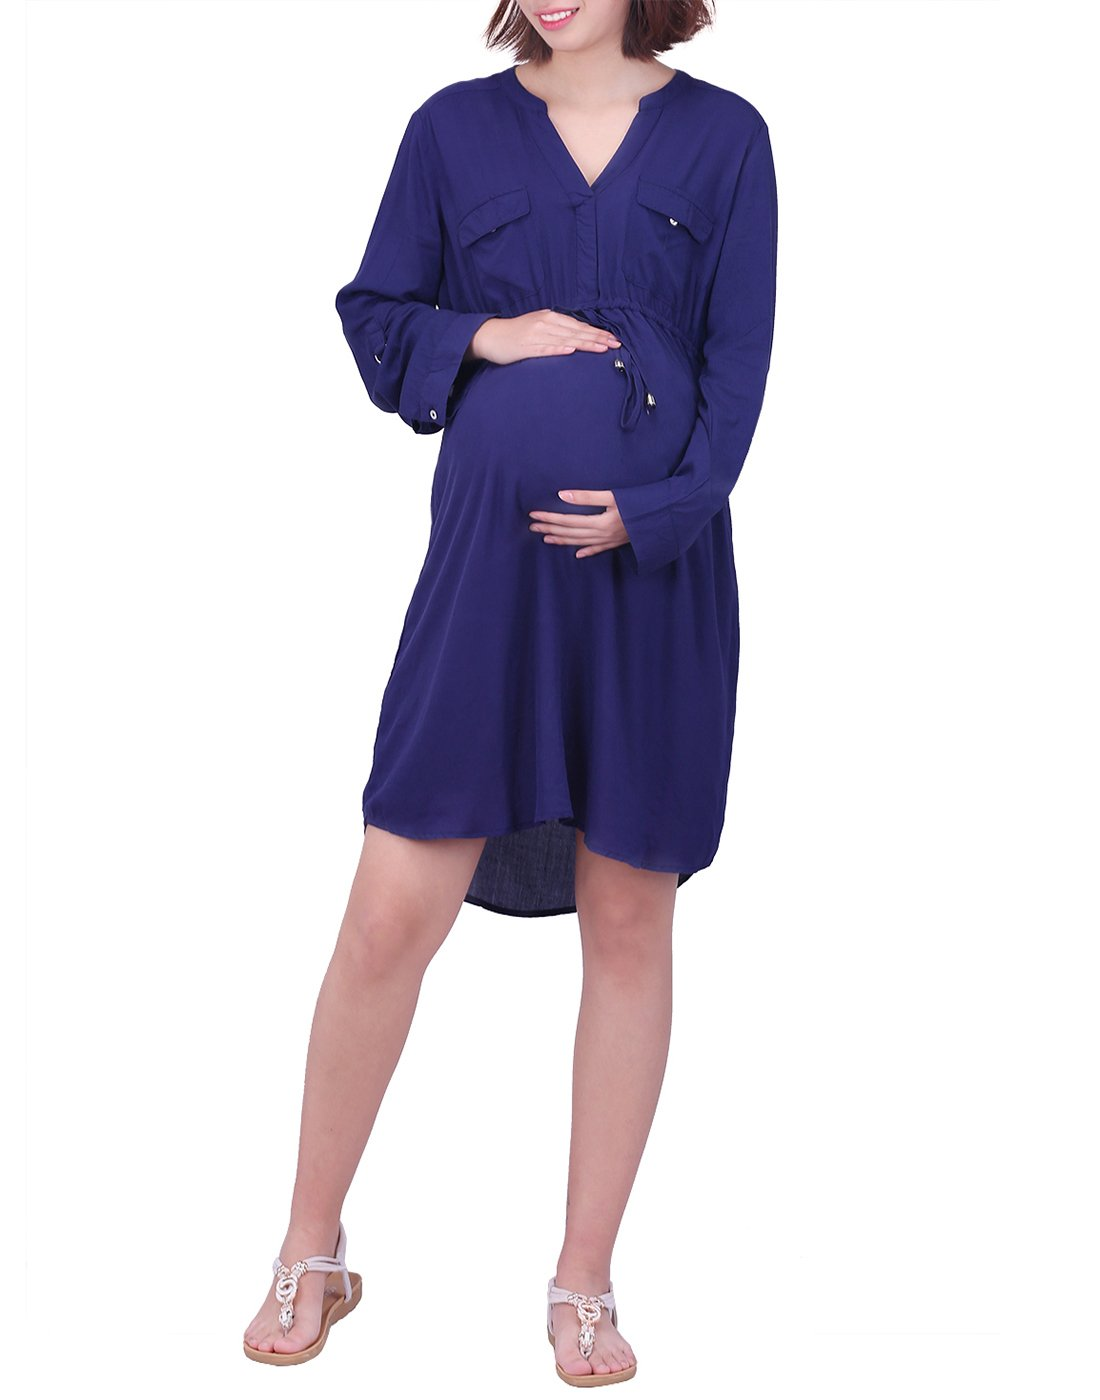 HDE Womens Maternity Dress Casual 3/4 Sleeve Tunic Shirt Office Work Dresses